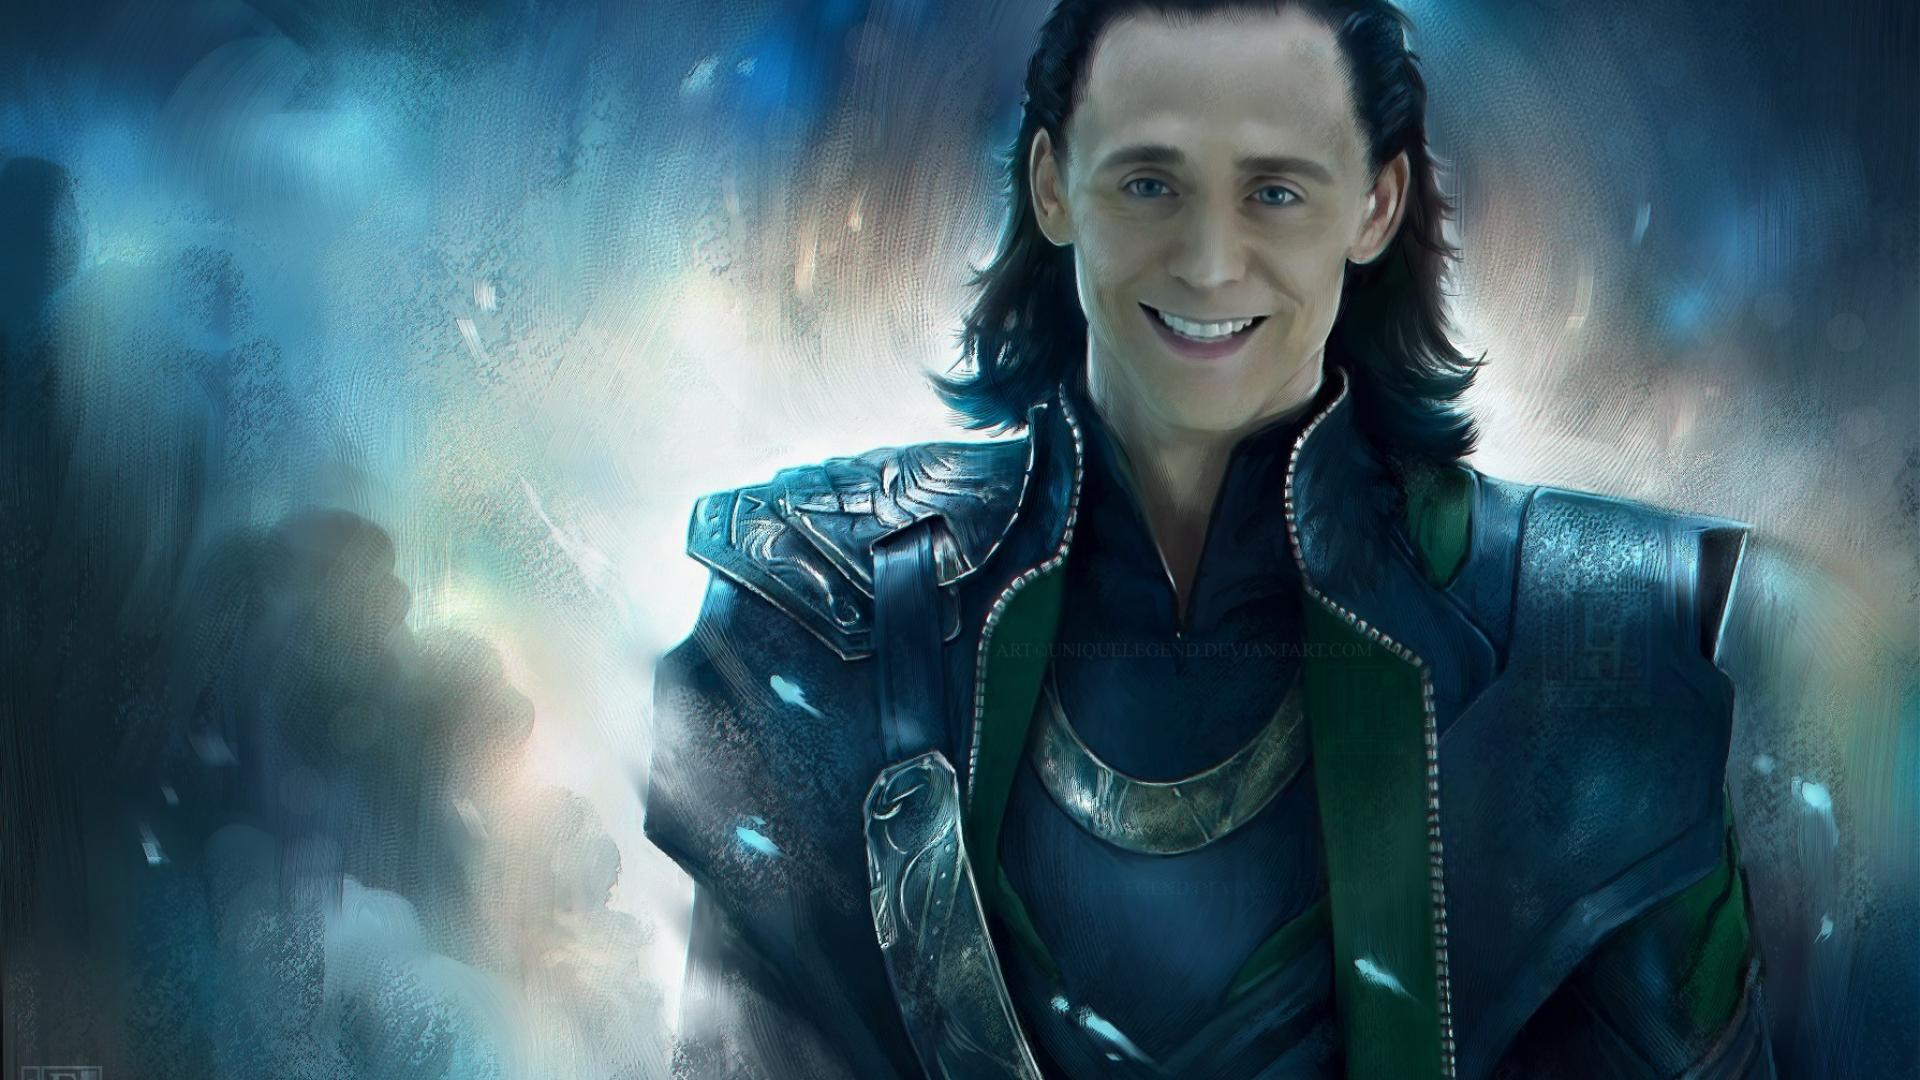 Loki marvel tom hiddleston the avengers movie wallpaper 6888 1920x1080